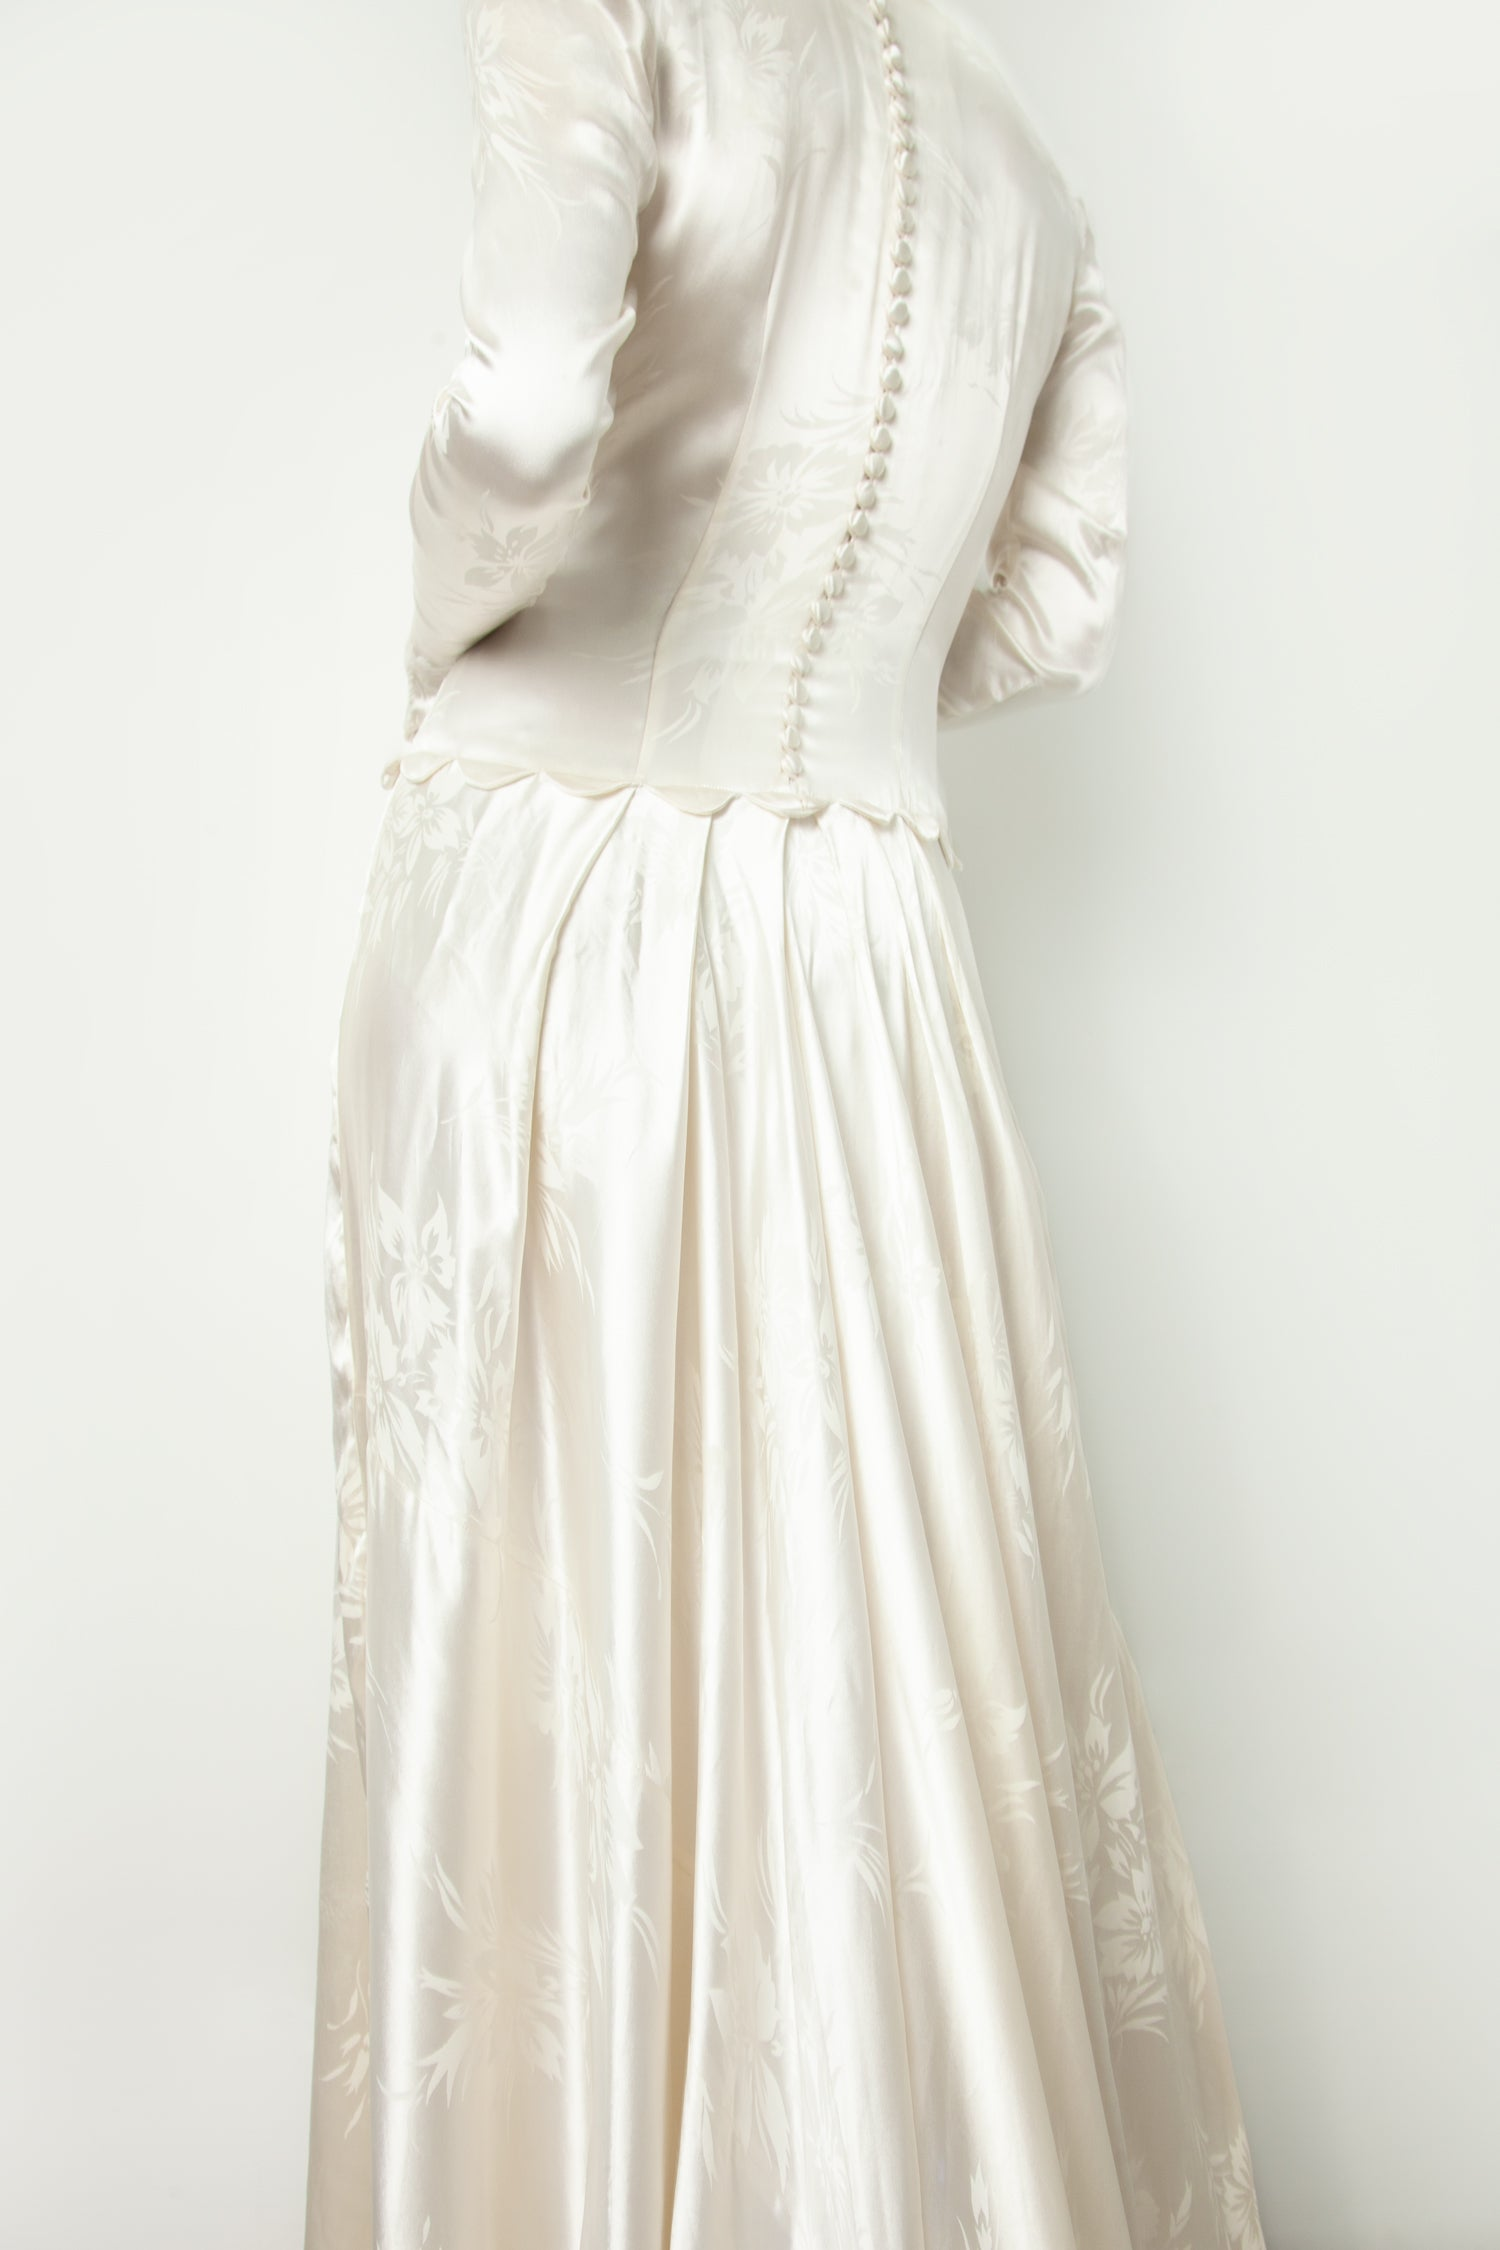 1930s WEDDING GOWN